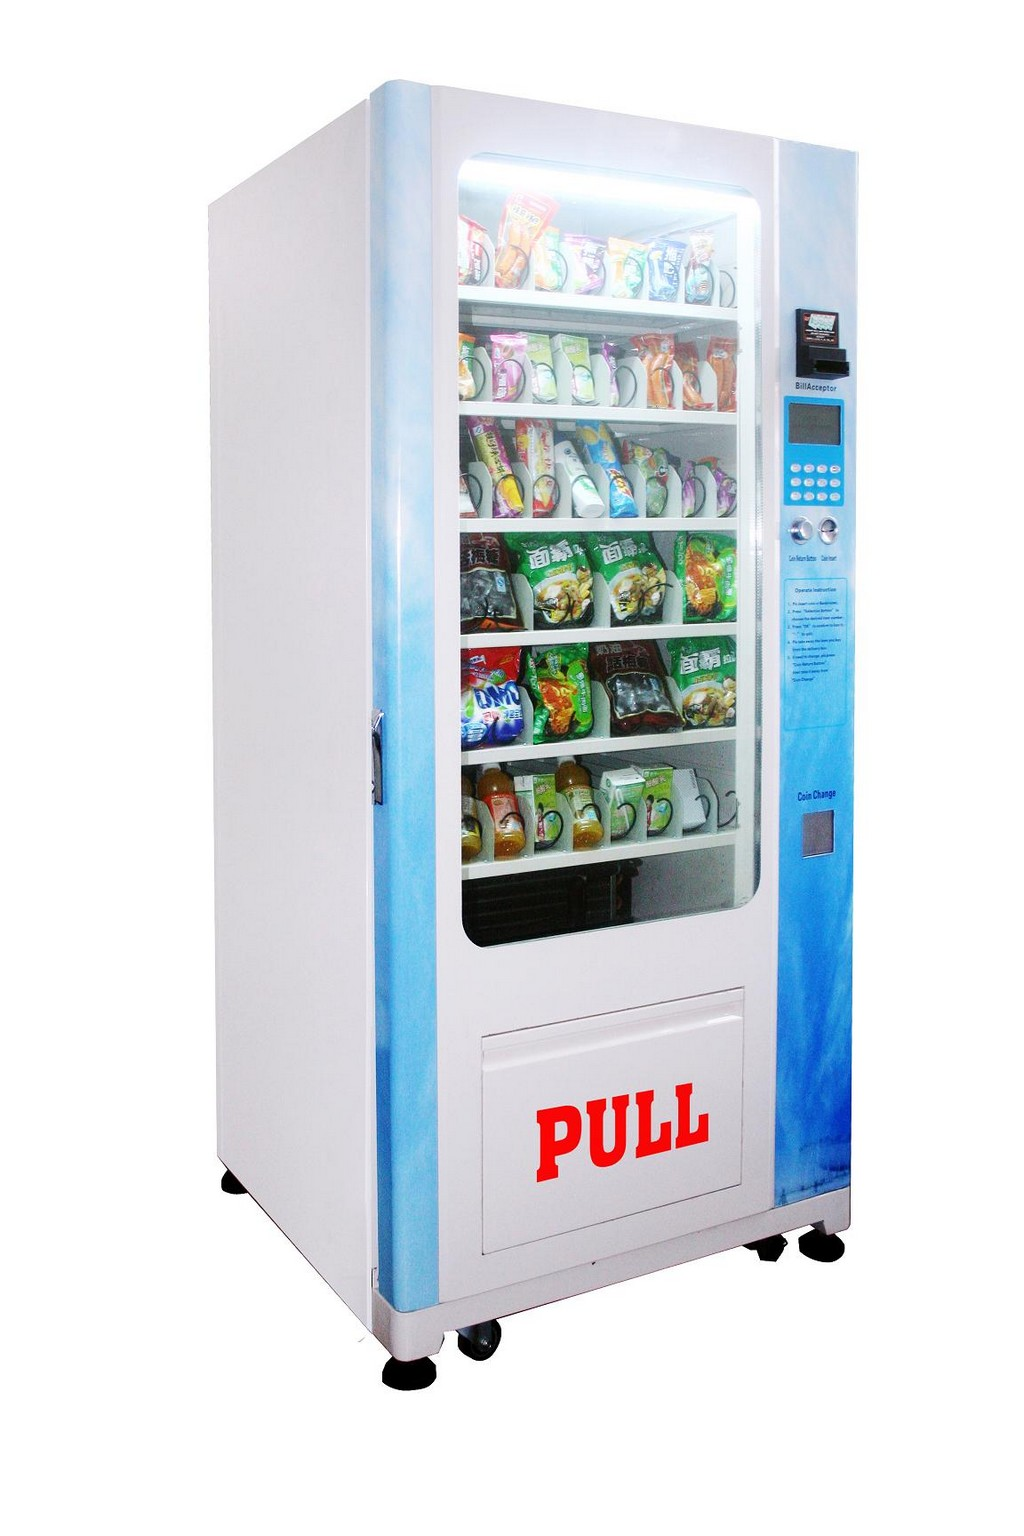 vending machine in schools, best vending machine, nescafe vending machine